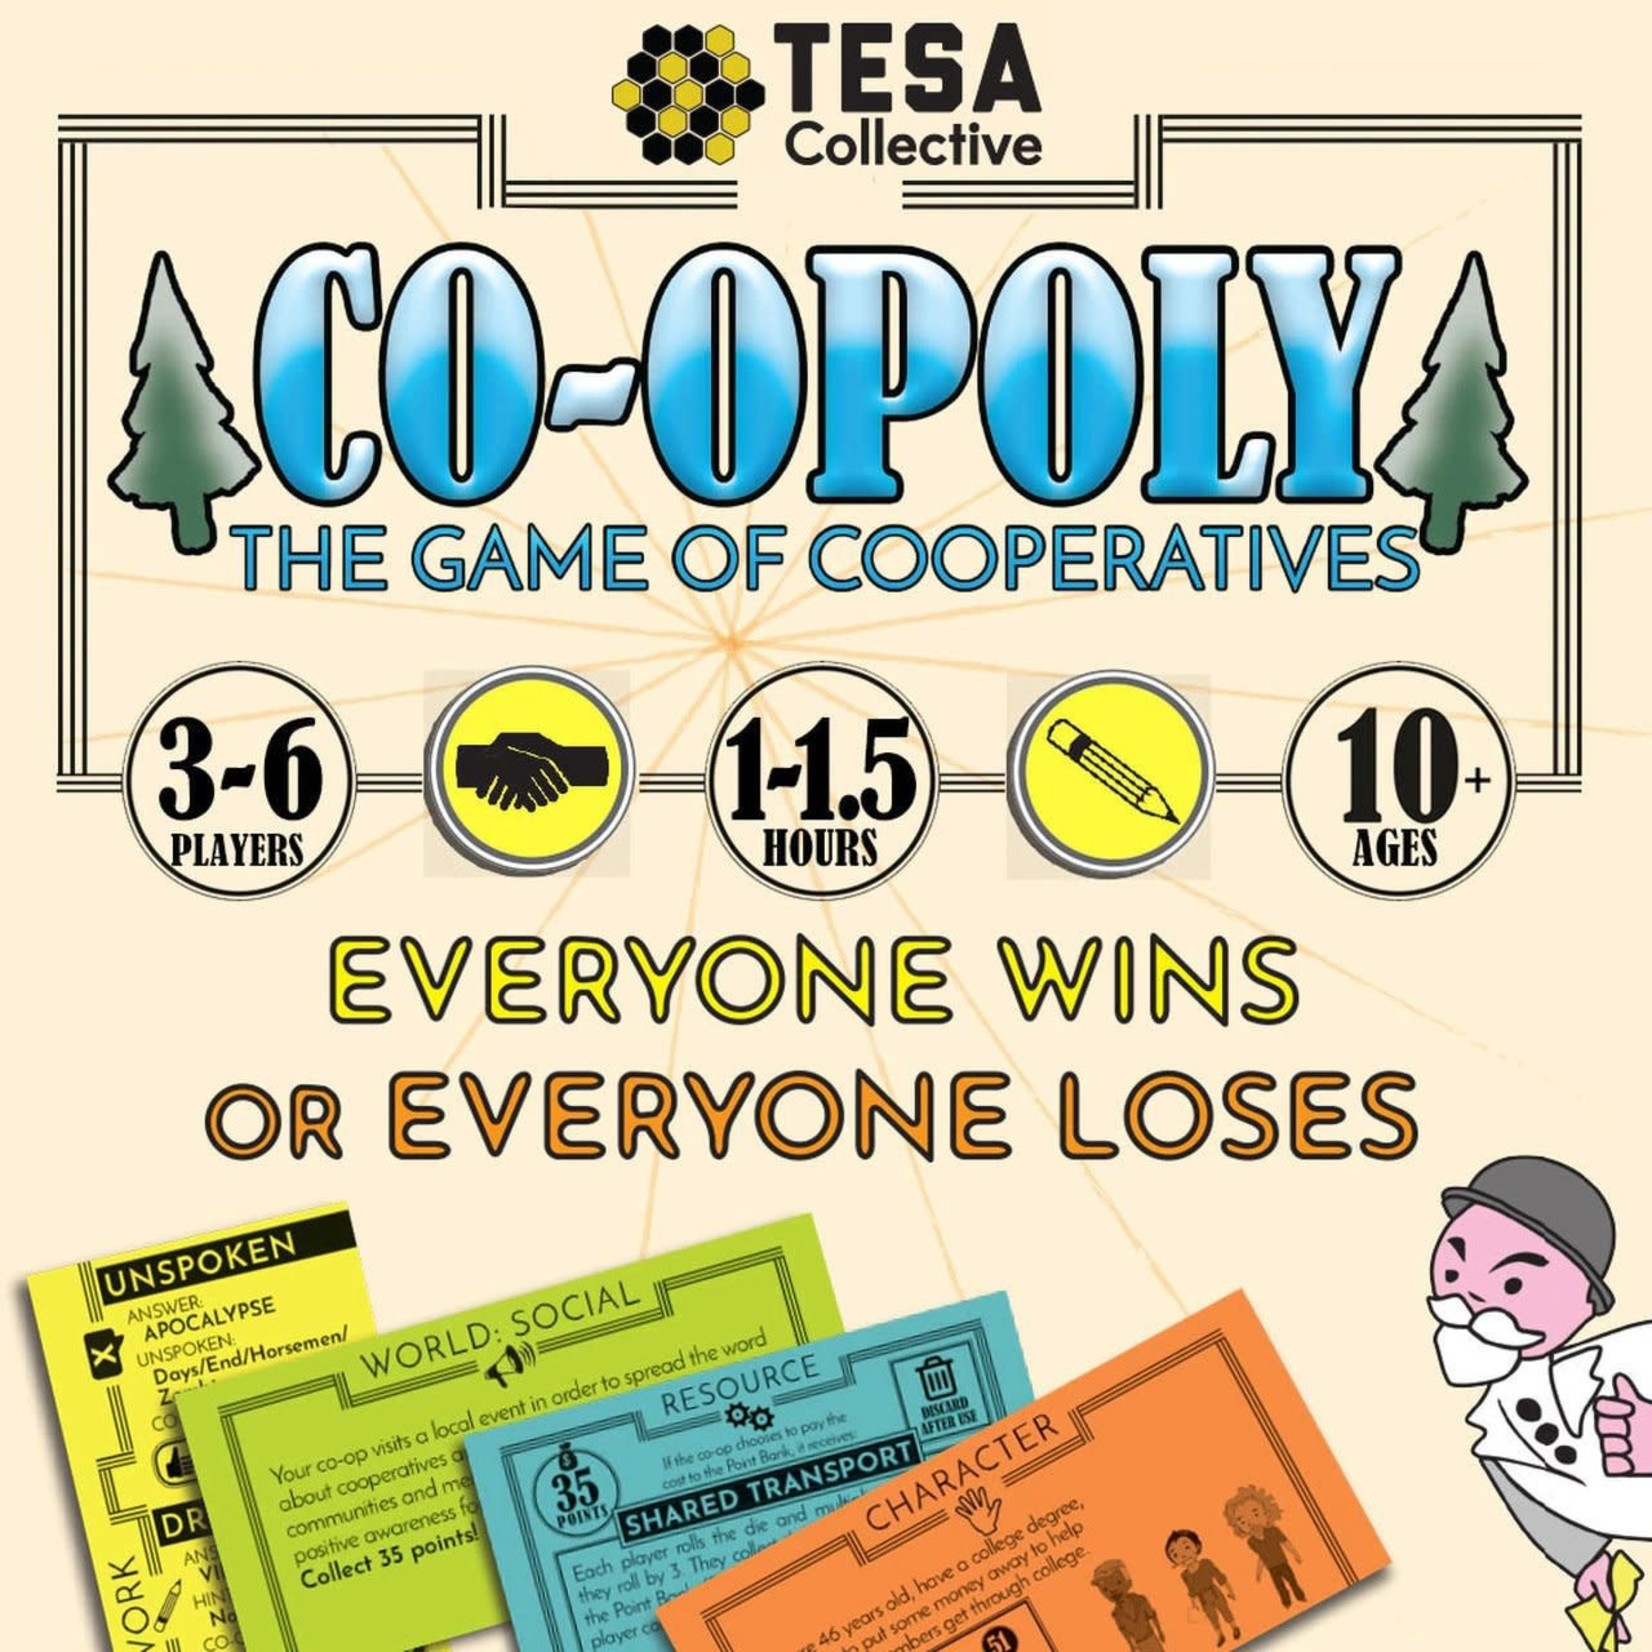 TESA Co-opoly: The Game of Cooperatives